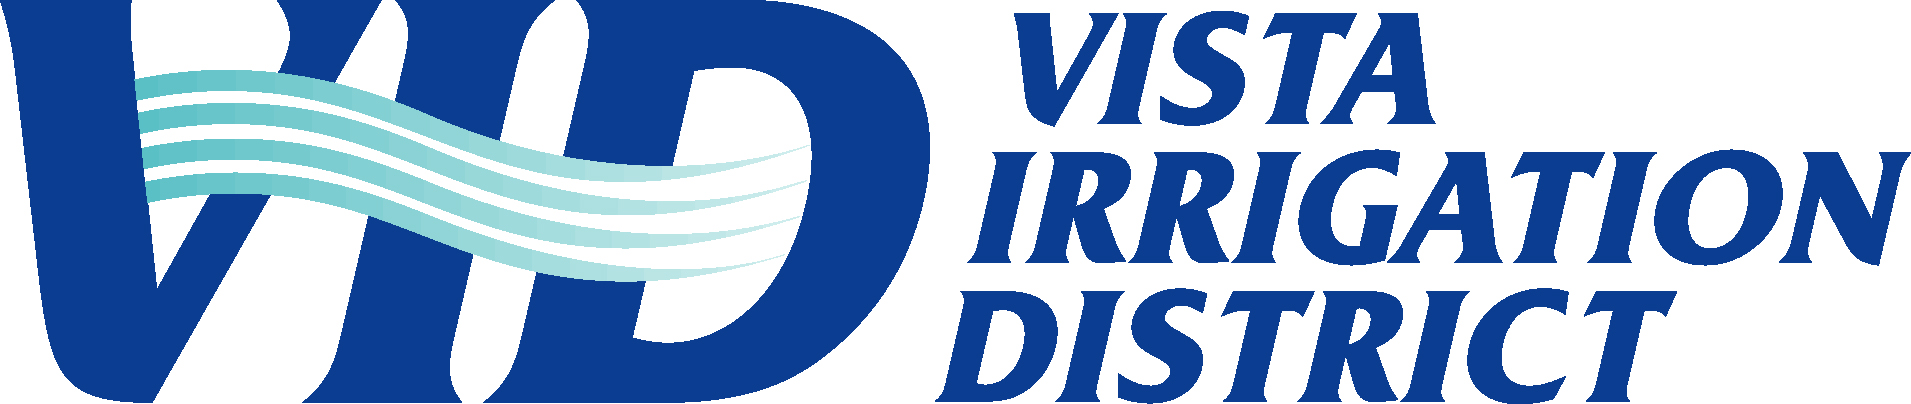 Vista Irrrigation District Logo